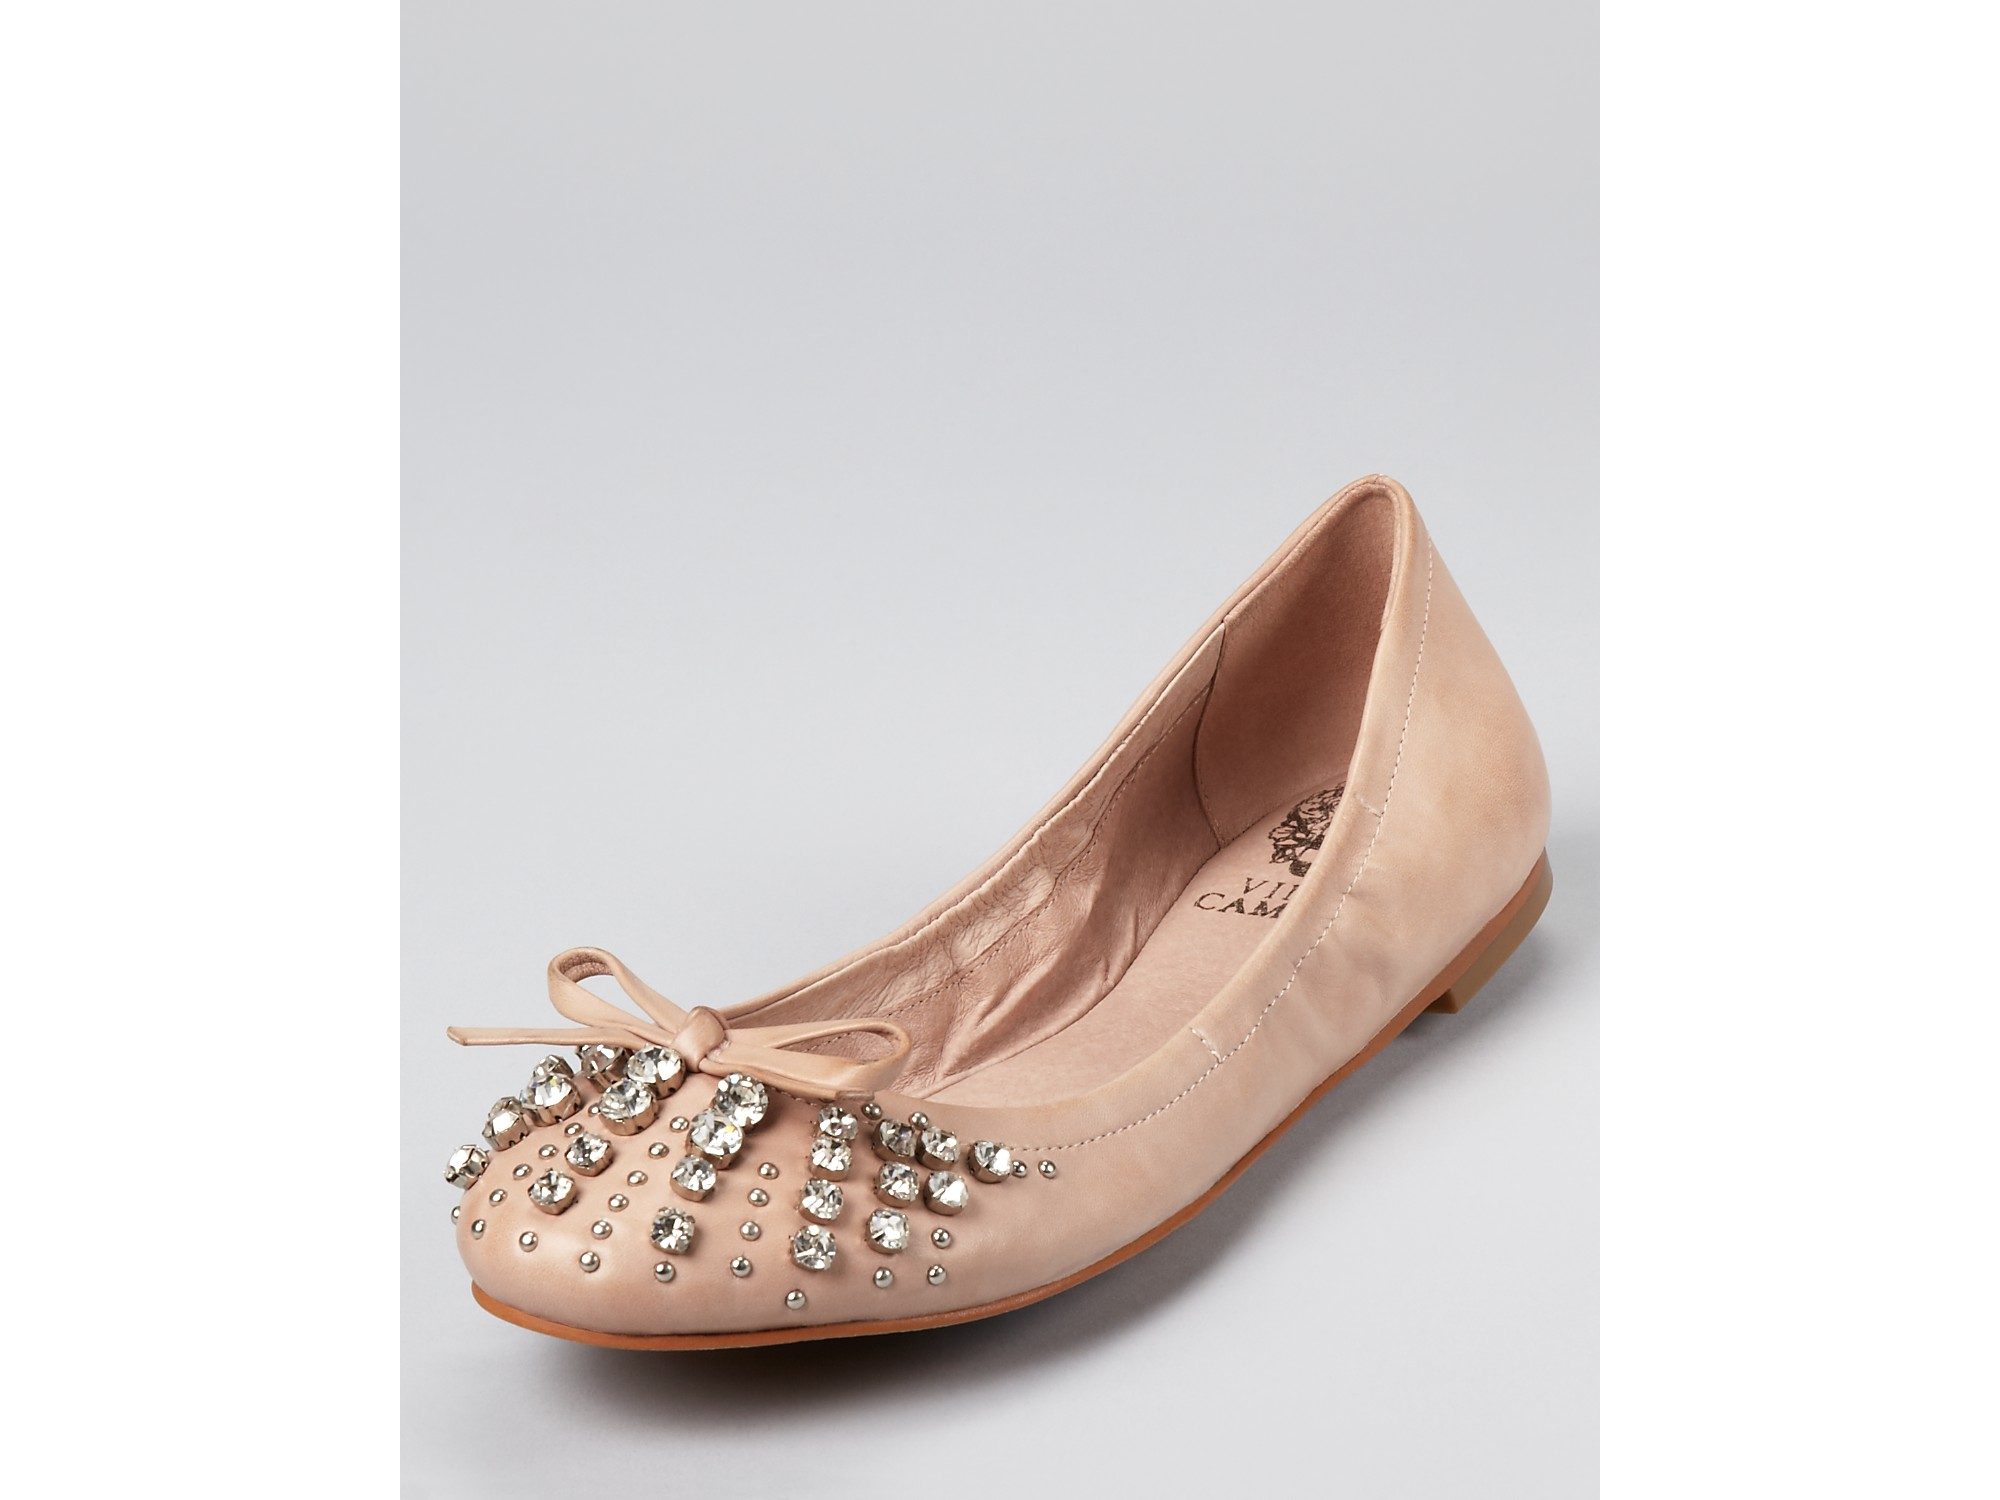 Lyst Vince Camuto Friso Rhinestone Ballet Flats In Pink